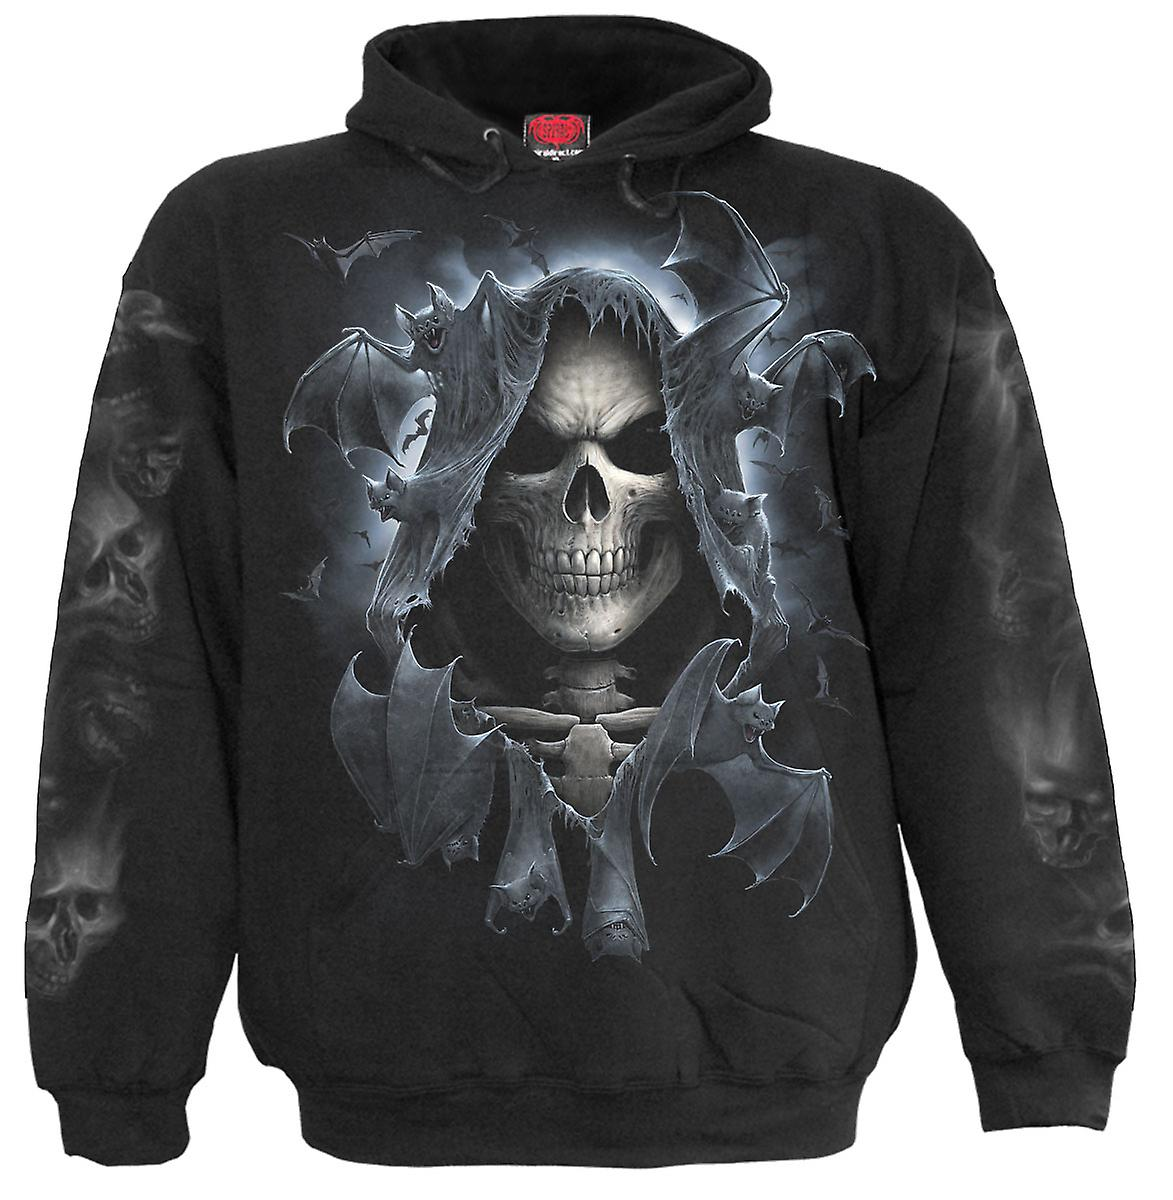 Spiral Direct Gothic REAPER BATS - Hoody Black|Death|Bats|Reaper|Skeleton